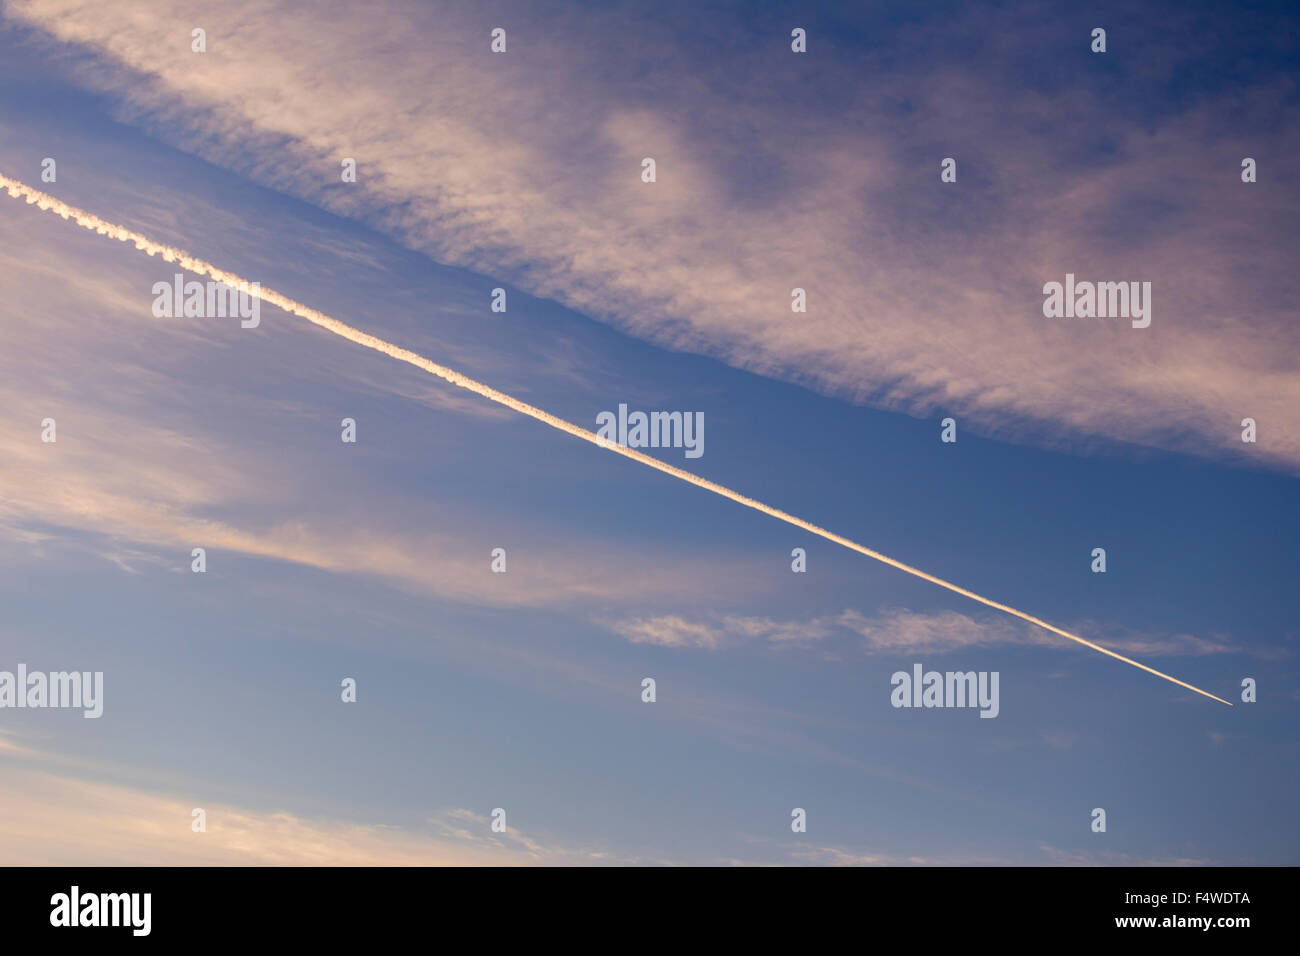 Low angle view of vapor trail in sky - Stock Image